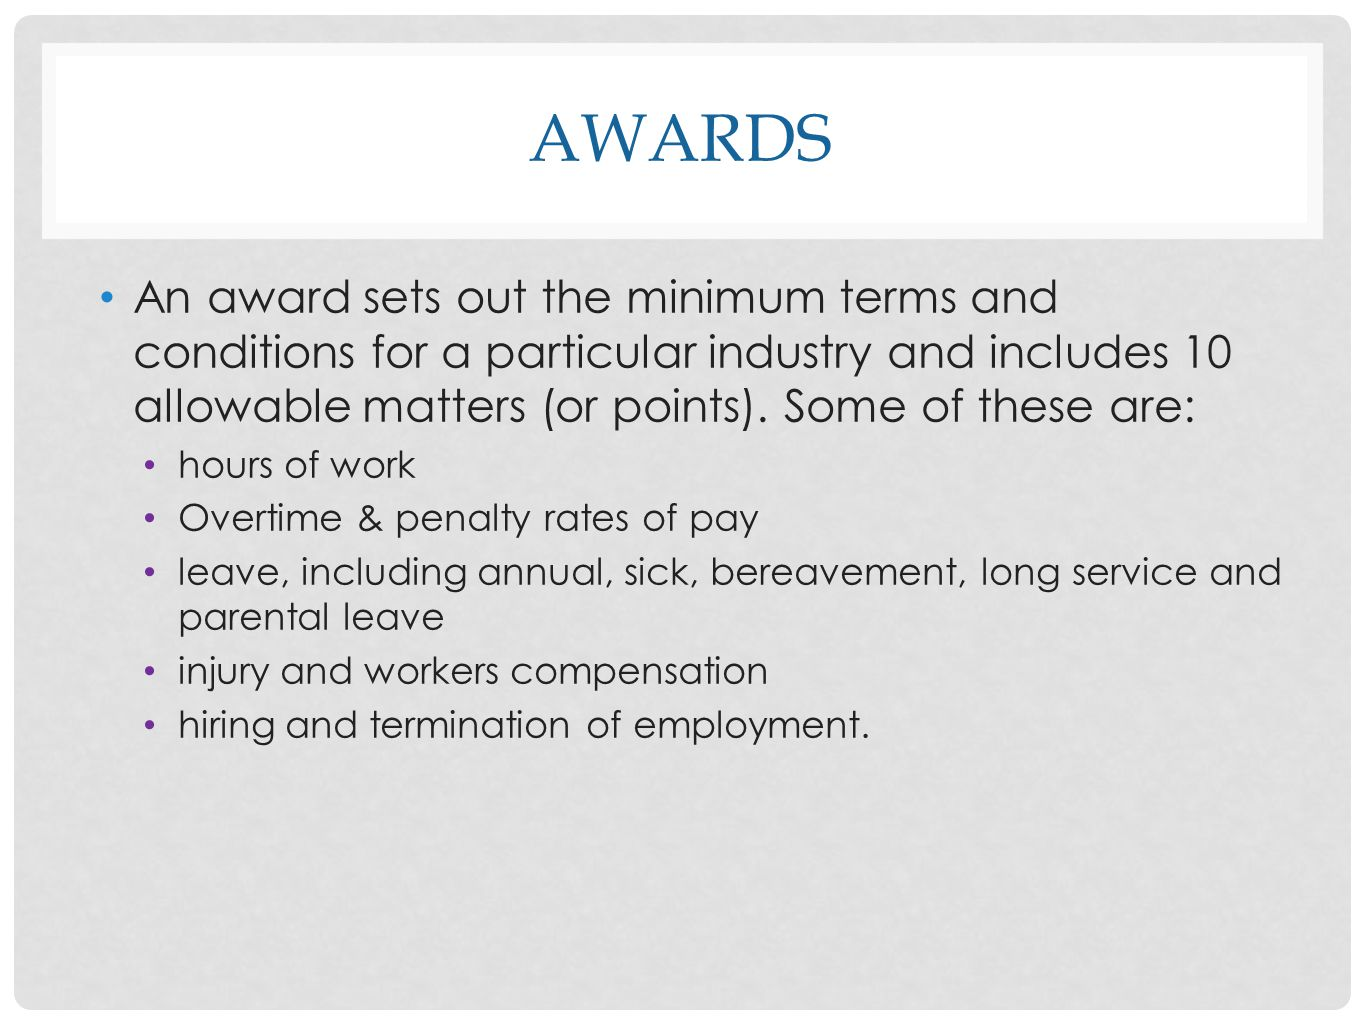 awards An award sets out the minimum terms and conditions for a particular industry and includes 10 allowable matters (or points). Some of these are: